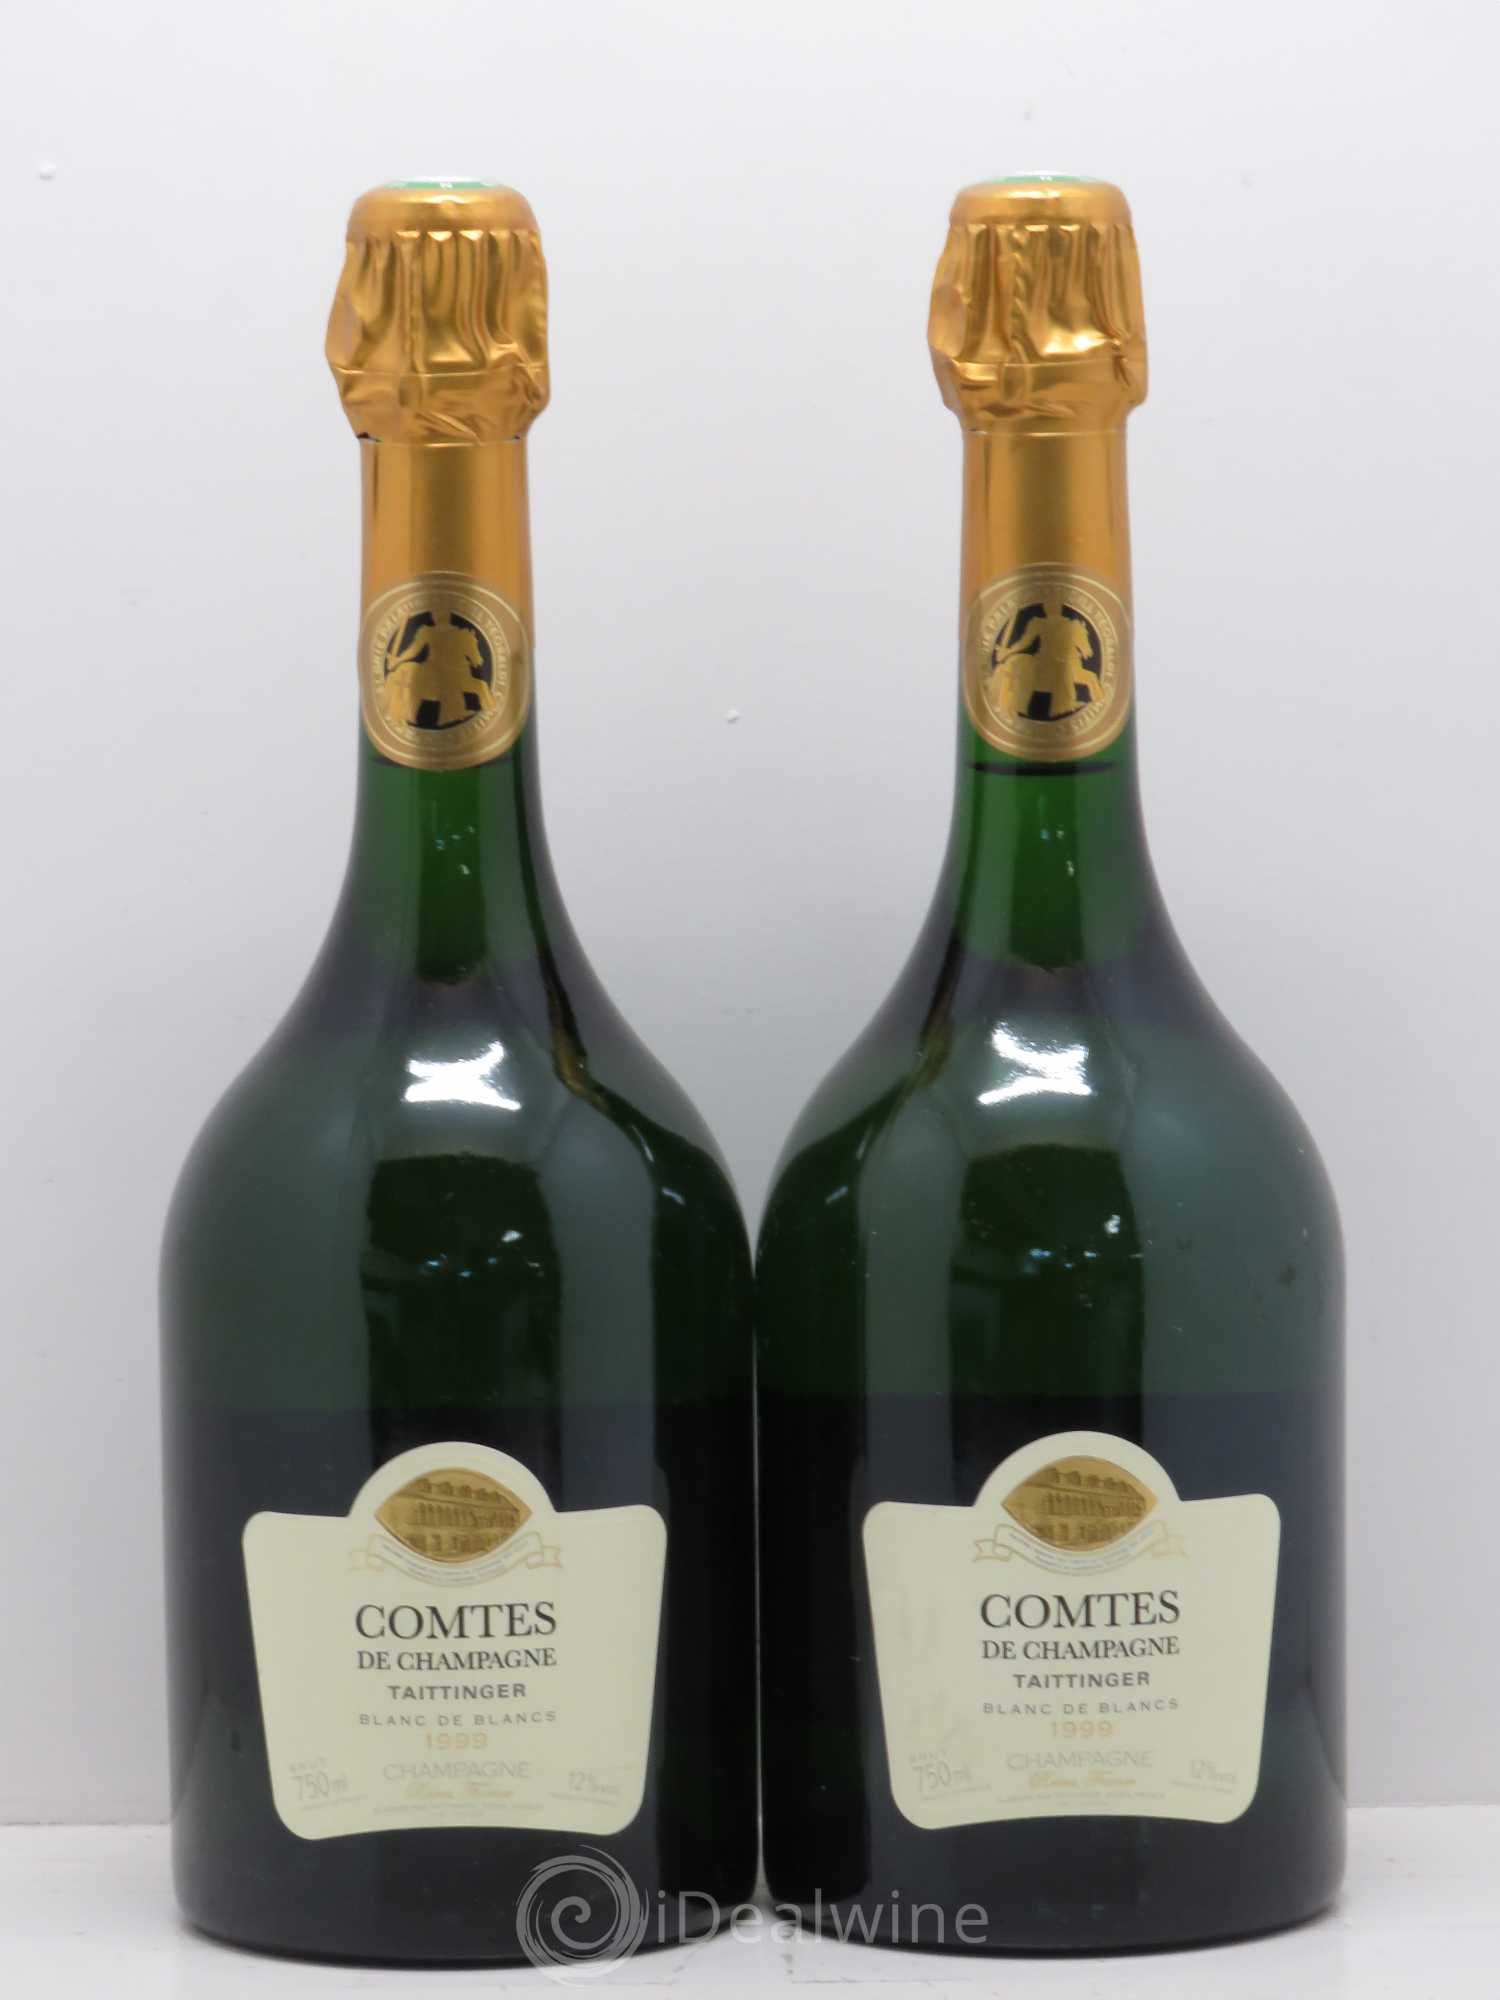 acheter comtes de champagne champagne taittinger 1999 lot 2059. Black Bedroom Furniture Sets. Home Design Ideas